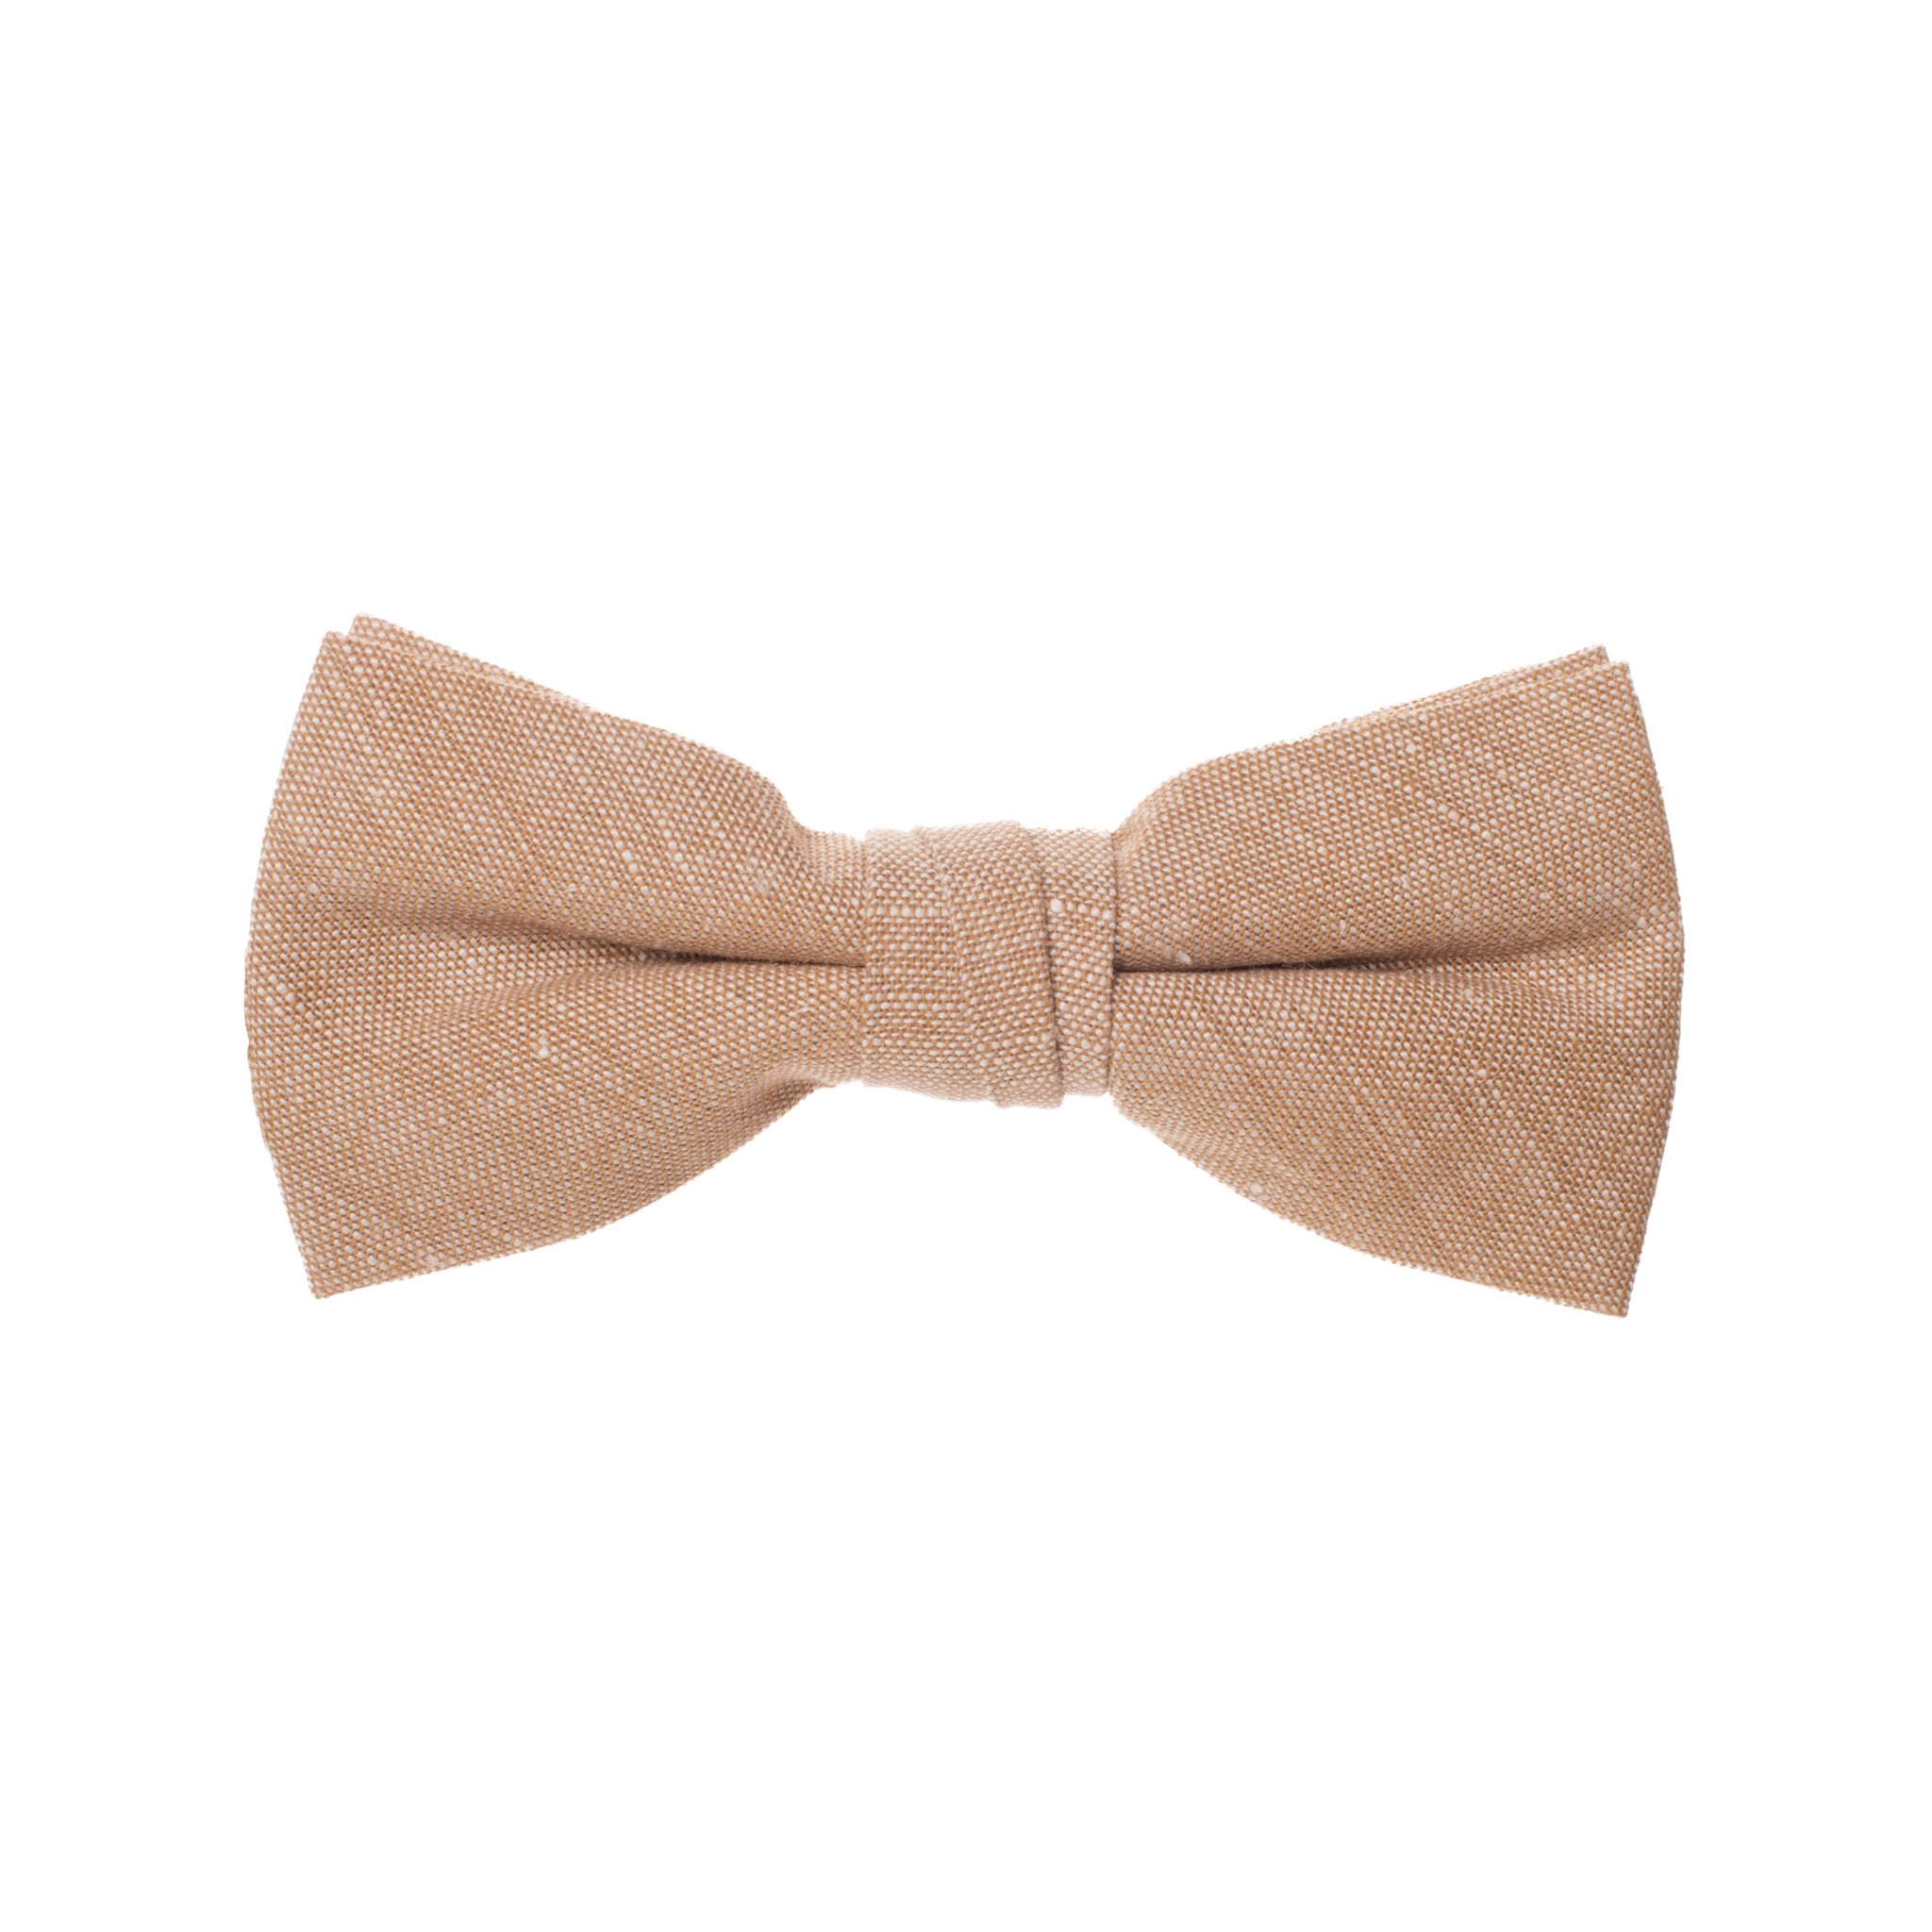 Born to Love - Boys Kids Pre Tied Adjustable Bowtie Easter Holiday Party Dress Up Cotton Bow Tie 4 Inches Tan